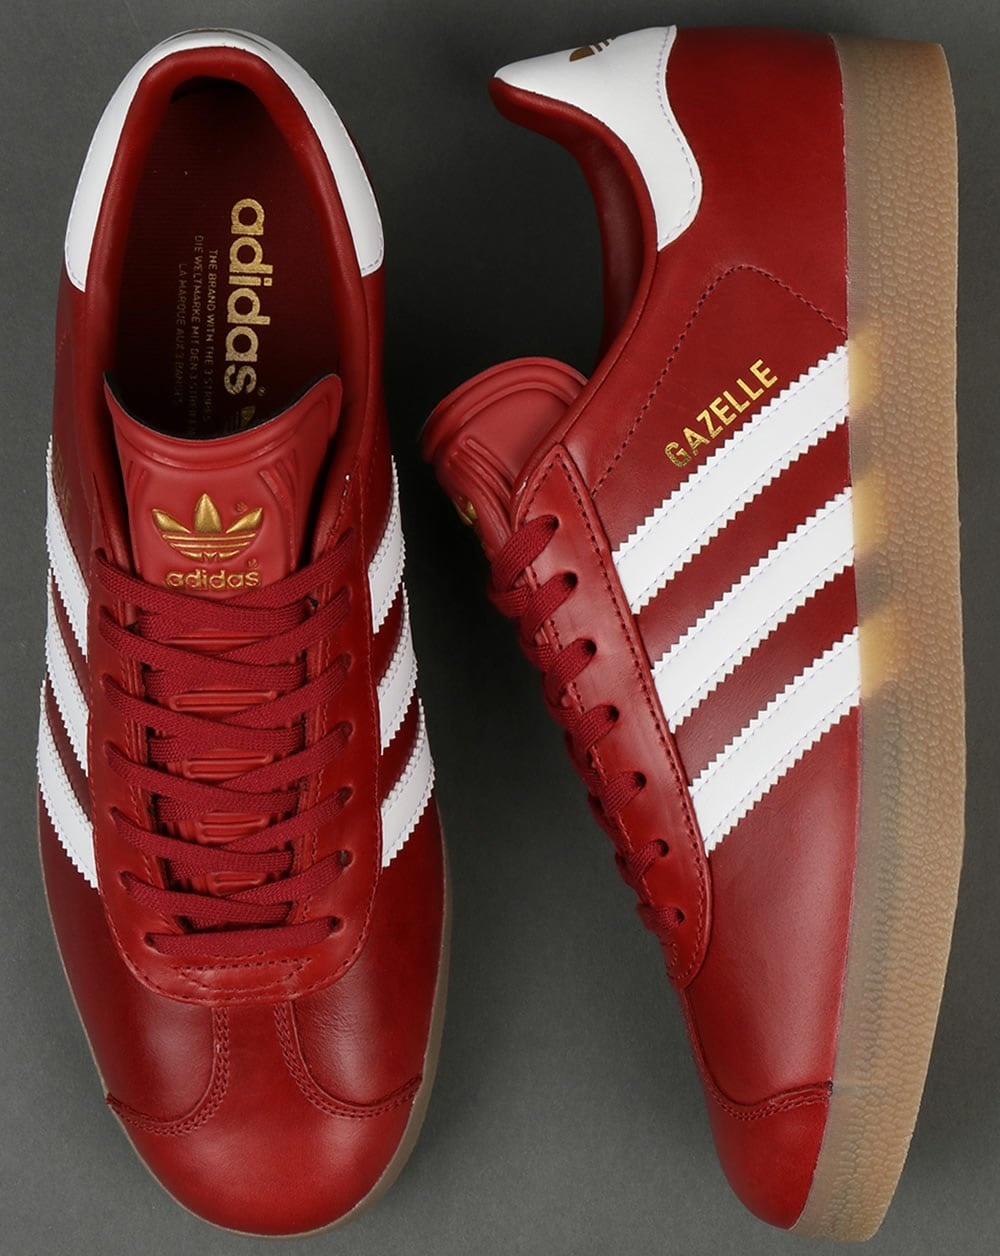 release date a65fb 48090 Adidas Gazelle Leather Trainers Oxblood Red White gum